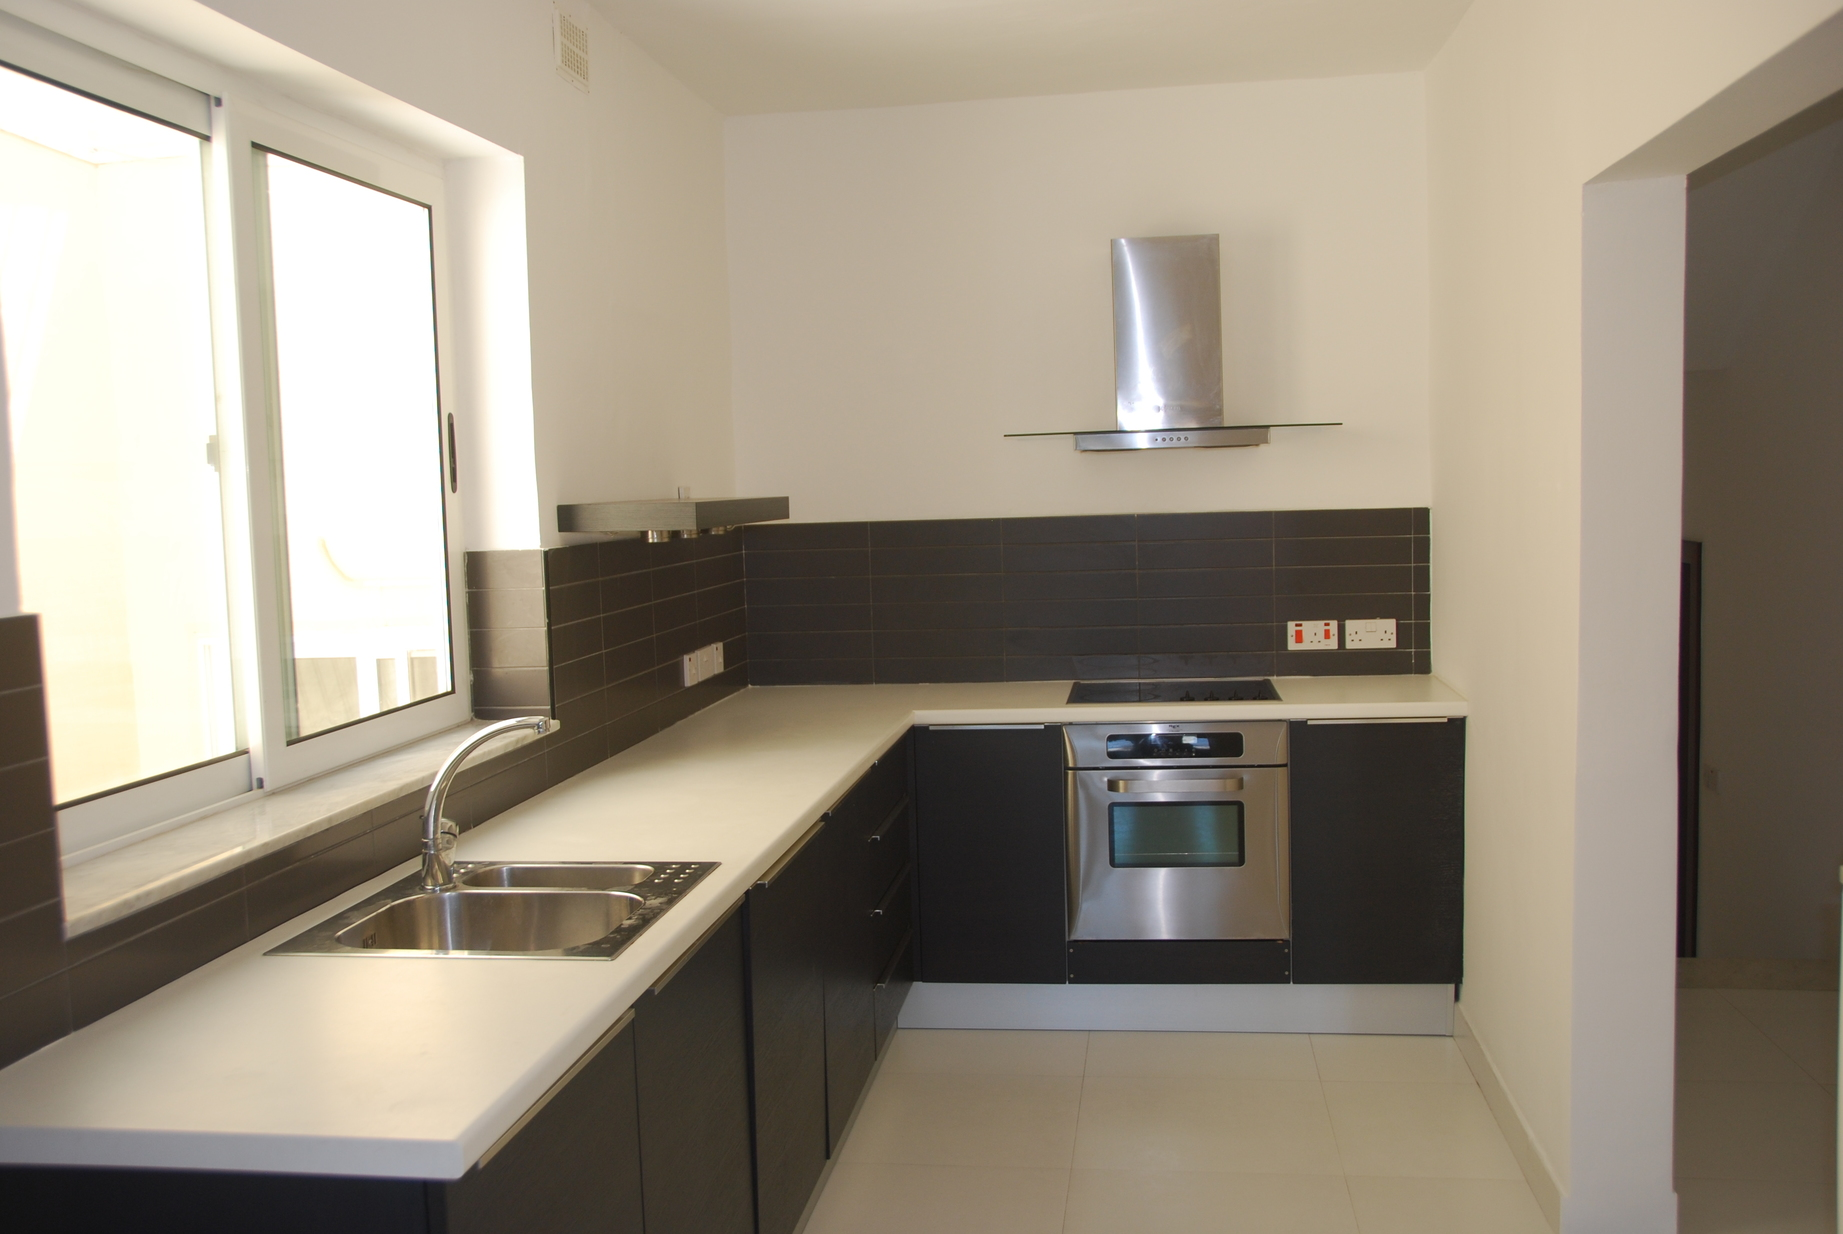 4 bed Apartment For Rent in Swieqi, Swieqi - thumb 2